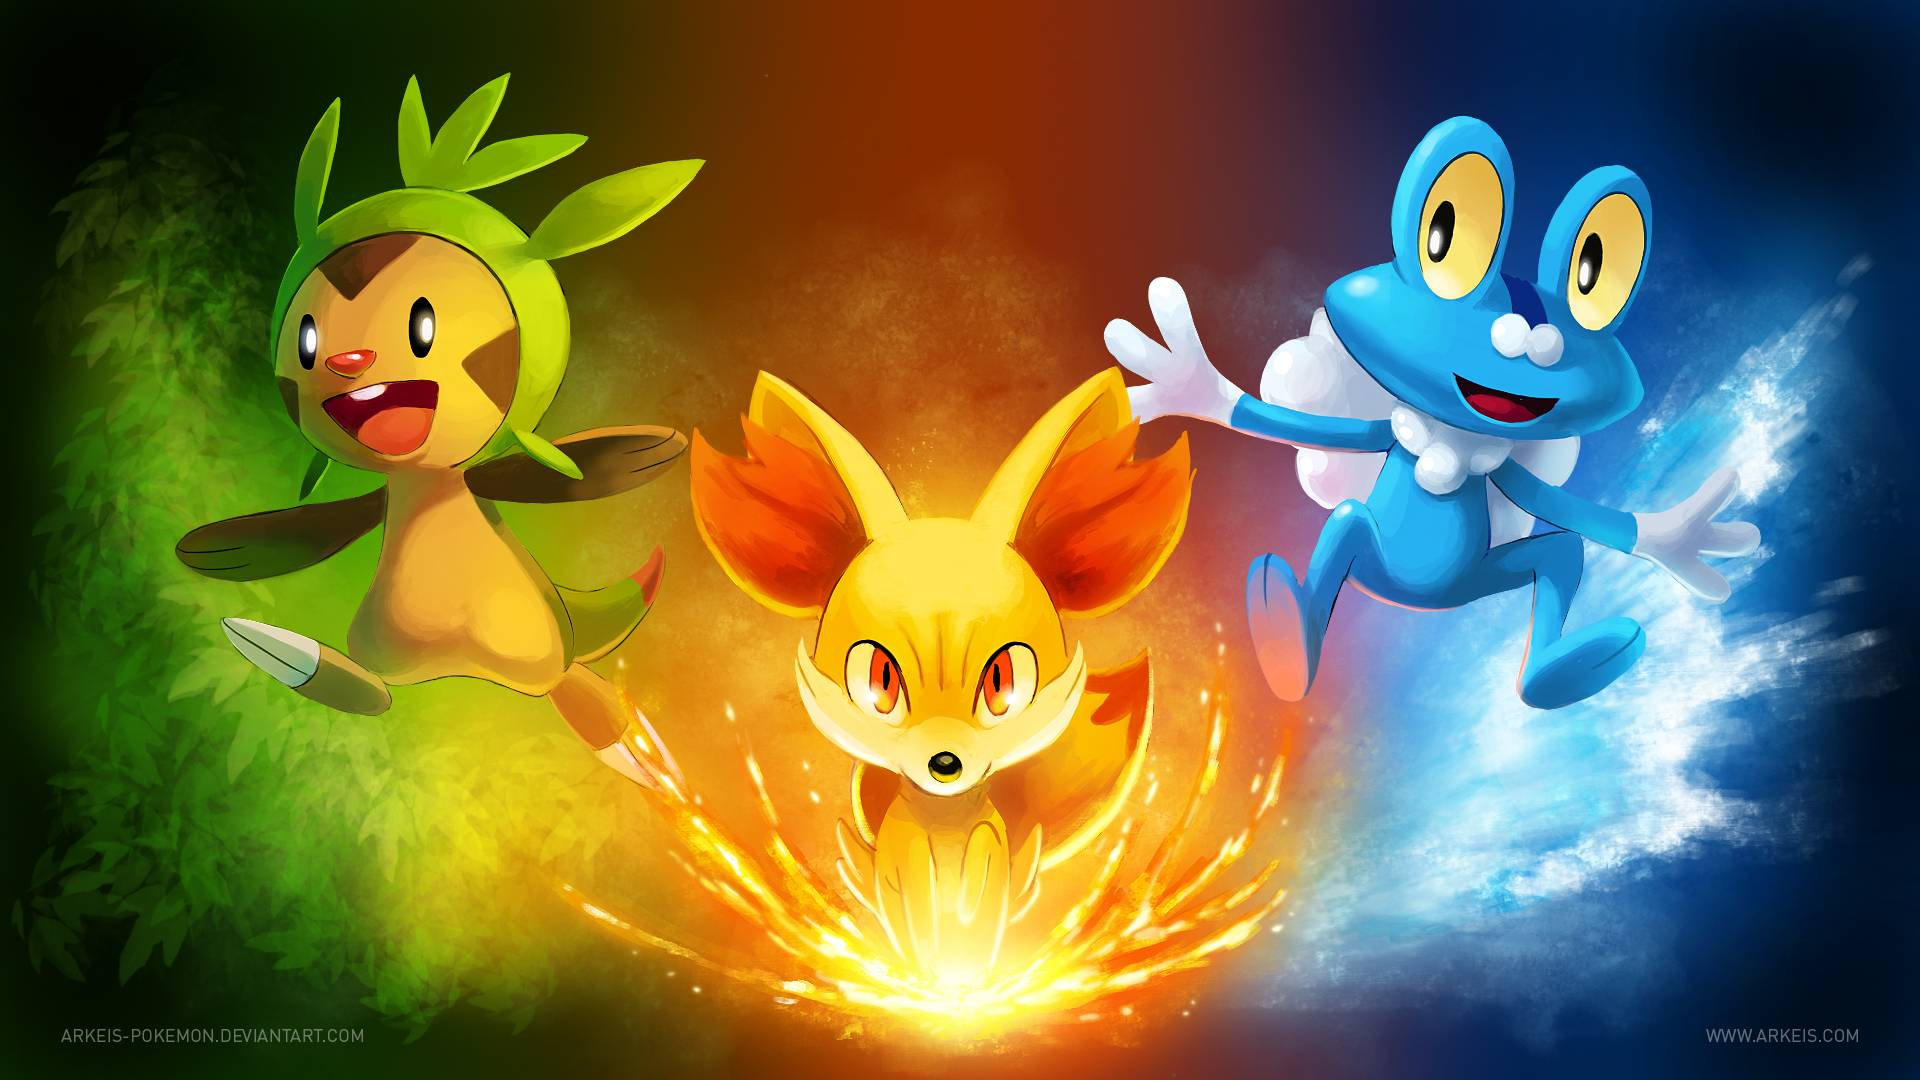 Pokemon Wallpaper 1920X1080 213635 1920x1080